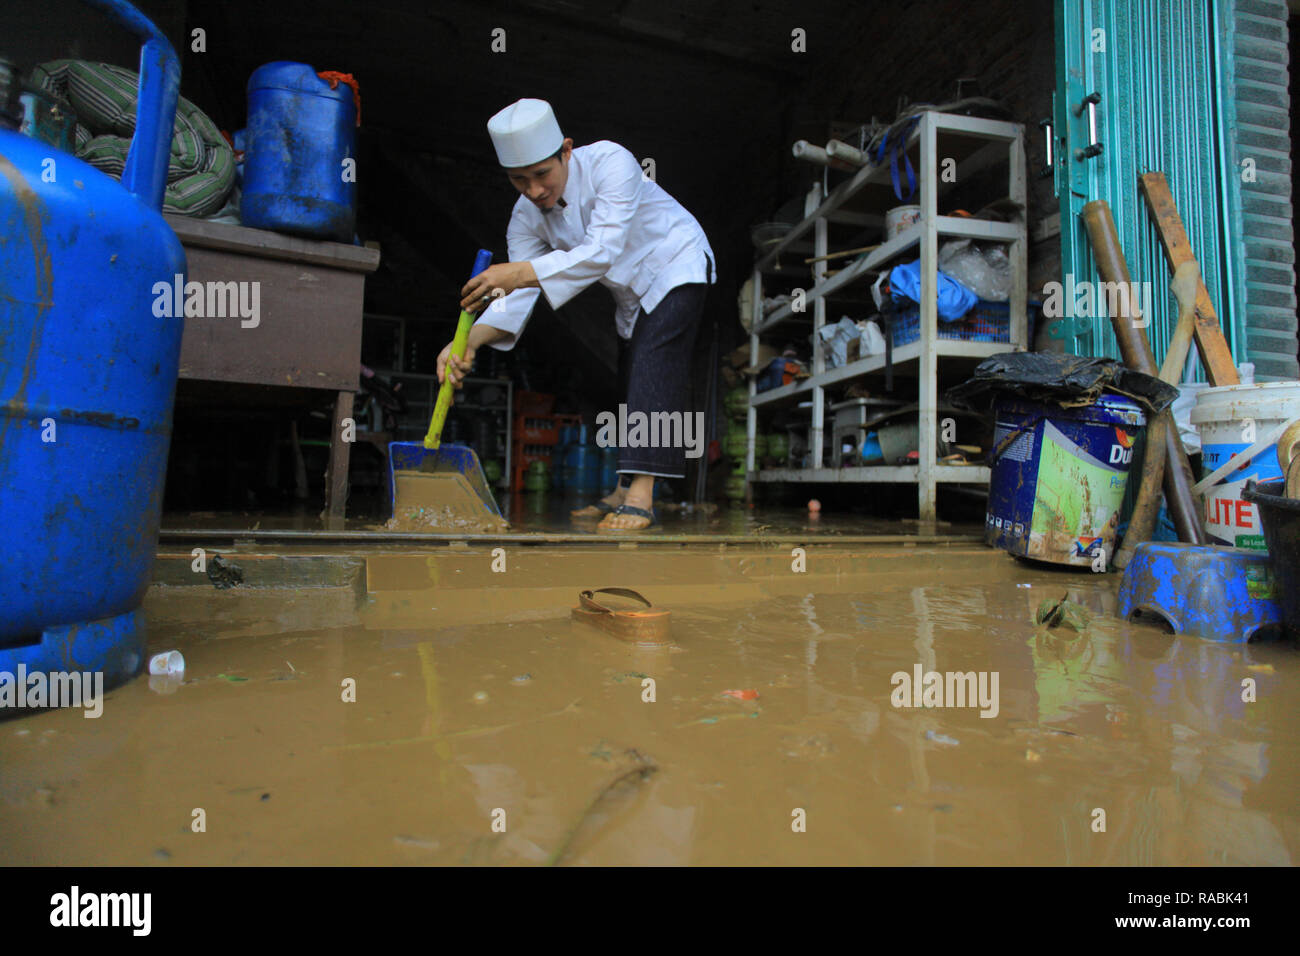 Resident seen cleaning his house during a flood. Dozens of residents were evacuated due to the flood disaster that hit village Rancamaya Cikobak RT 03/04, Rancamaya, Bogor City. This flood began to hit dozens of houses in Kampung Rancamaya Cikobak due to the flow of the Cisadane tributary, the Cimakaci River overflowing. - Stock Image